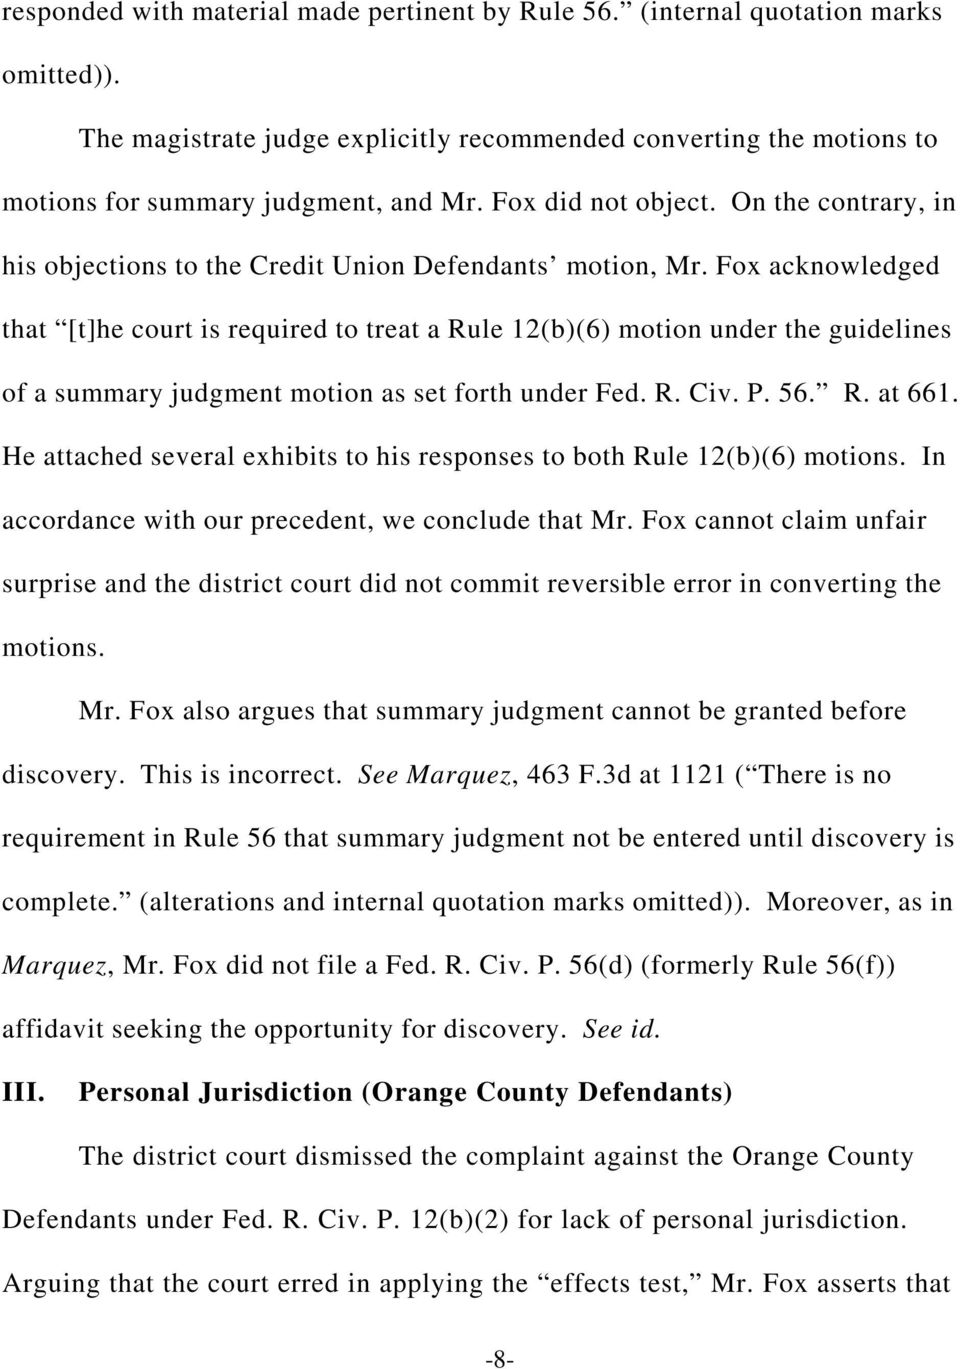 Fox acknowledged that [t]he court is required to treat a Rule 12(b)(6) motion under the guidelines of a summary judgment motion as set forth under Fed. R. Civ. P. 56. R. at 661.